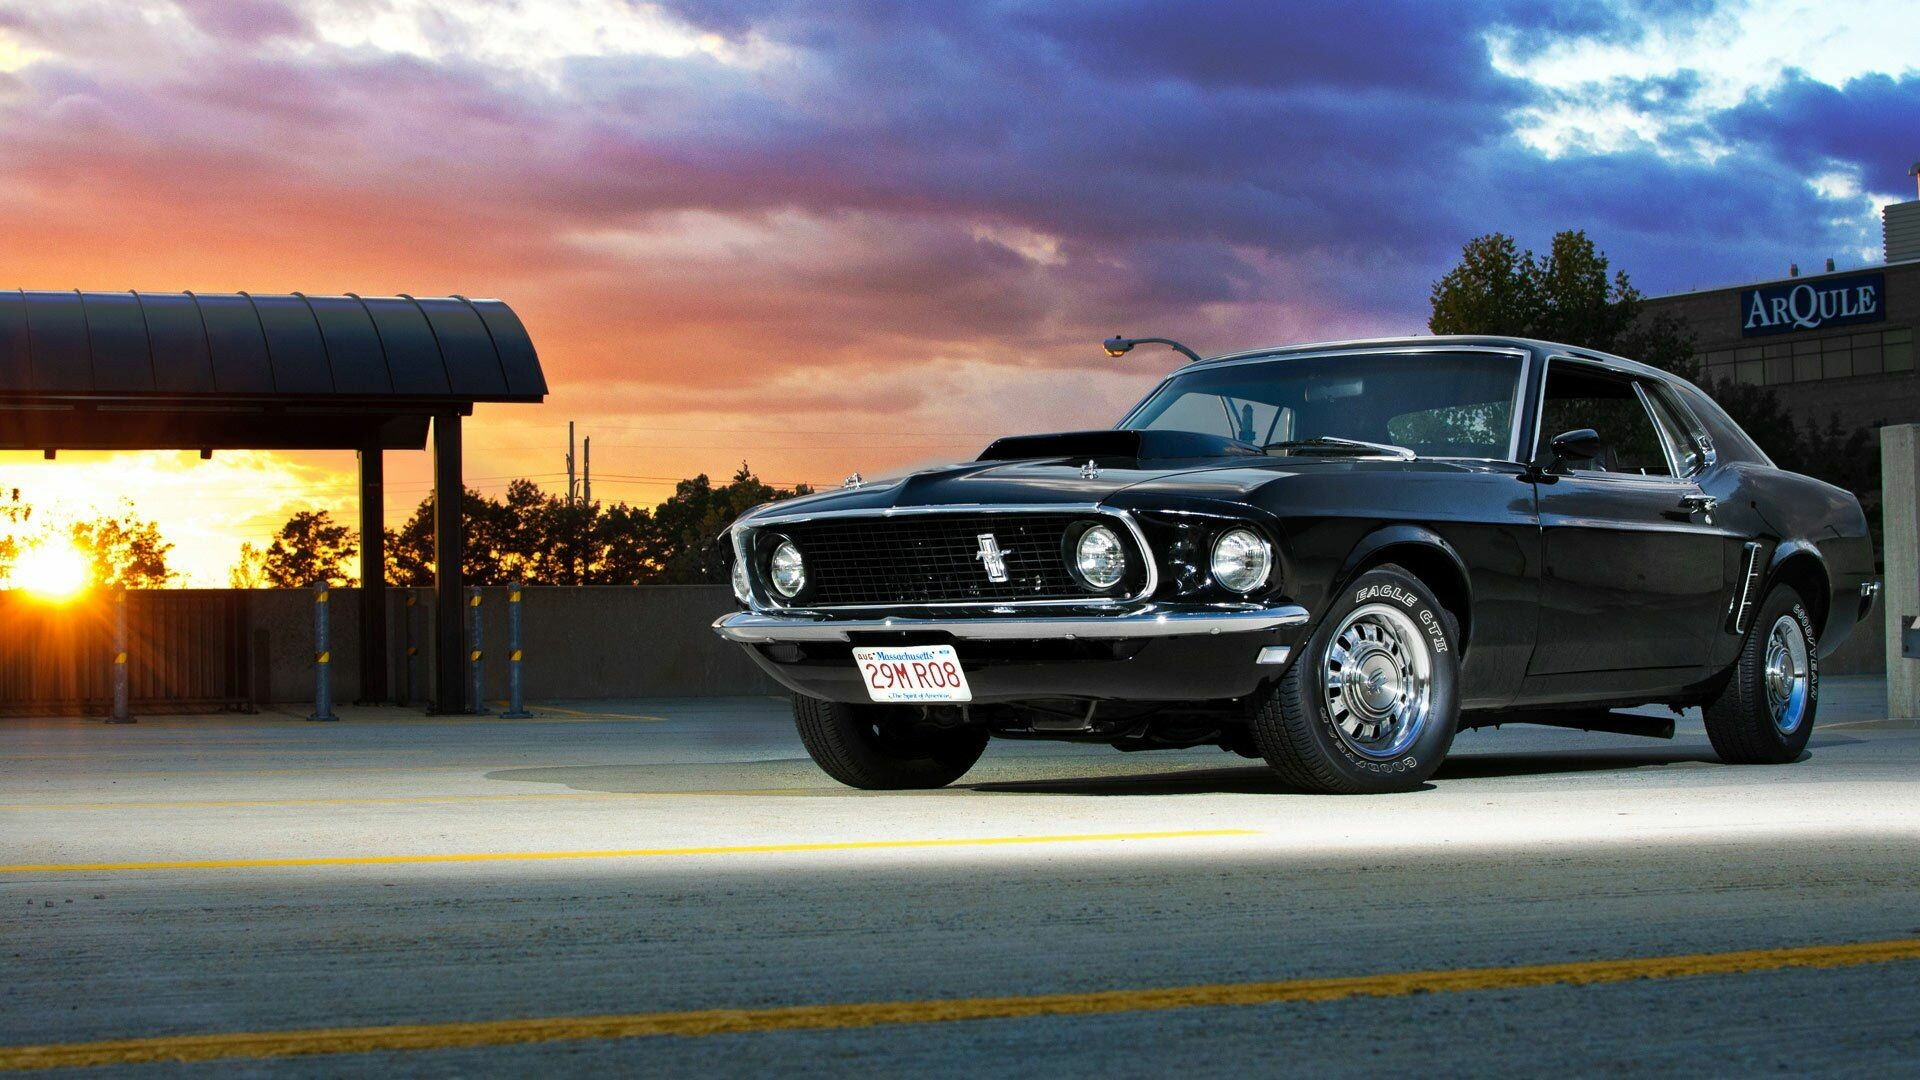 Download violet, muscle car, ford mustang shelby gt500 wallpaper for screen 1920x1080, full hd, hdtv, fhd, 1080p 35 Mustang Wallpapers Hd 4k 5k For Pc And Mobile Download Free Images For Iphone Android